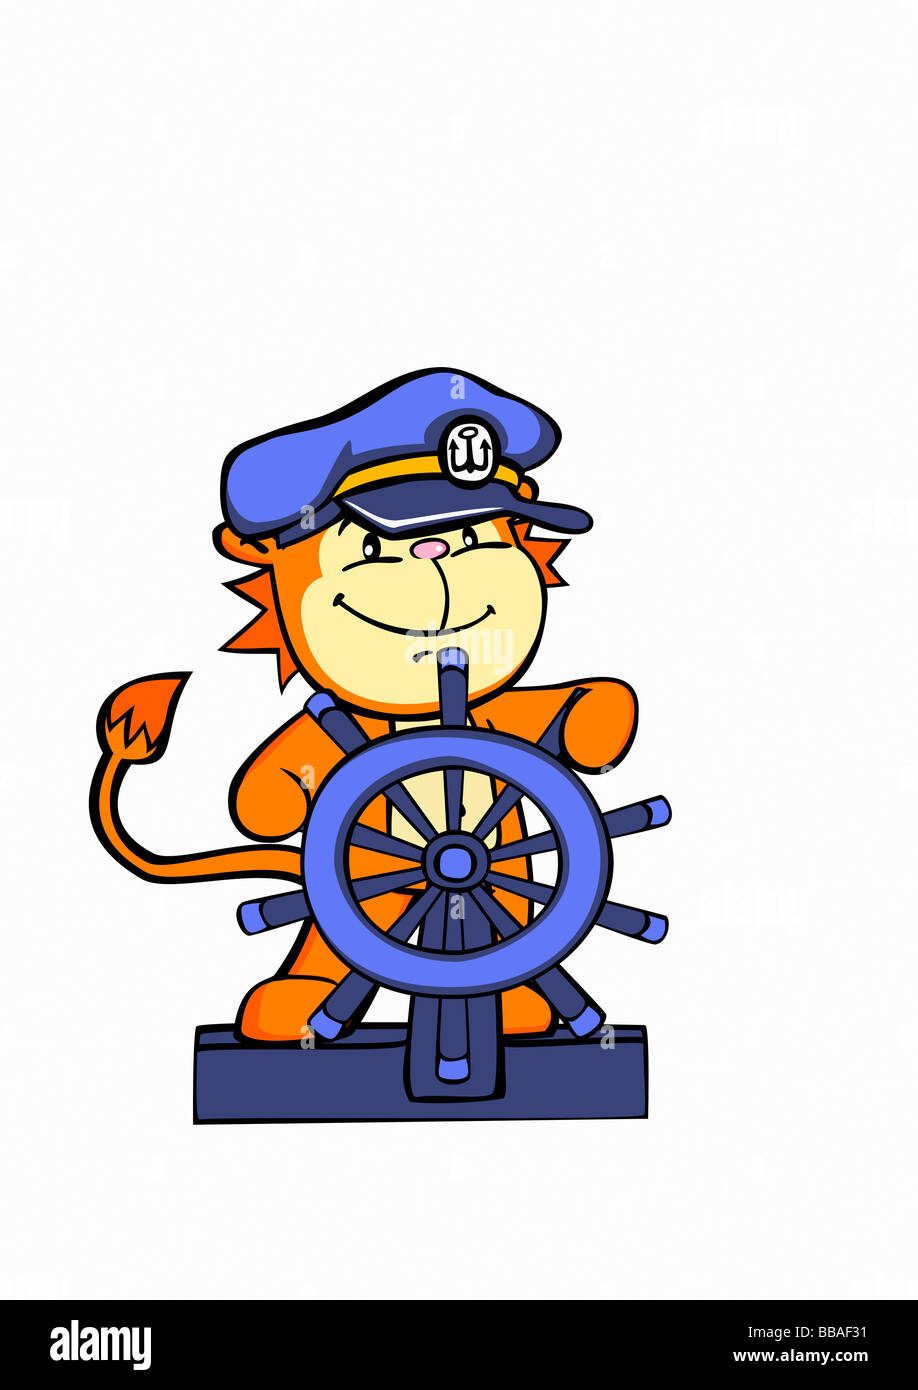 A lion sea captain steering a ship's helm - Stock Image